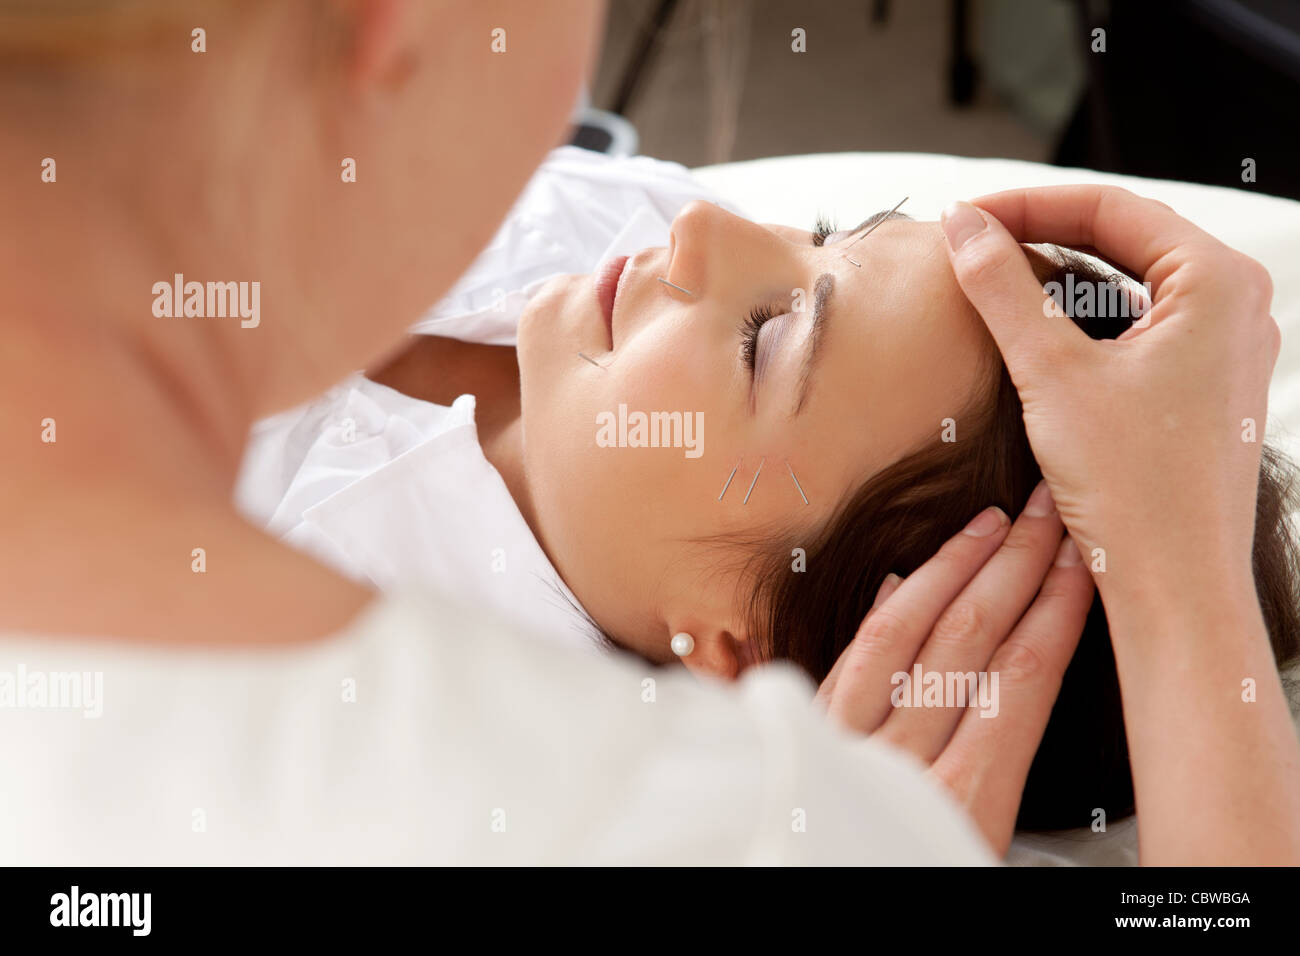 Over the shoulder shot of professional acupuncturist placing needle in face of patient - Stock Image